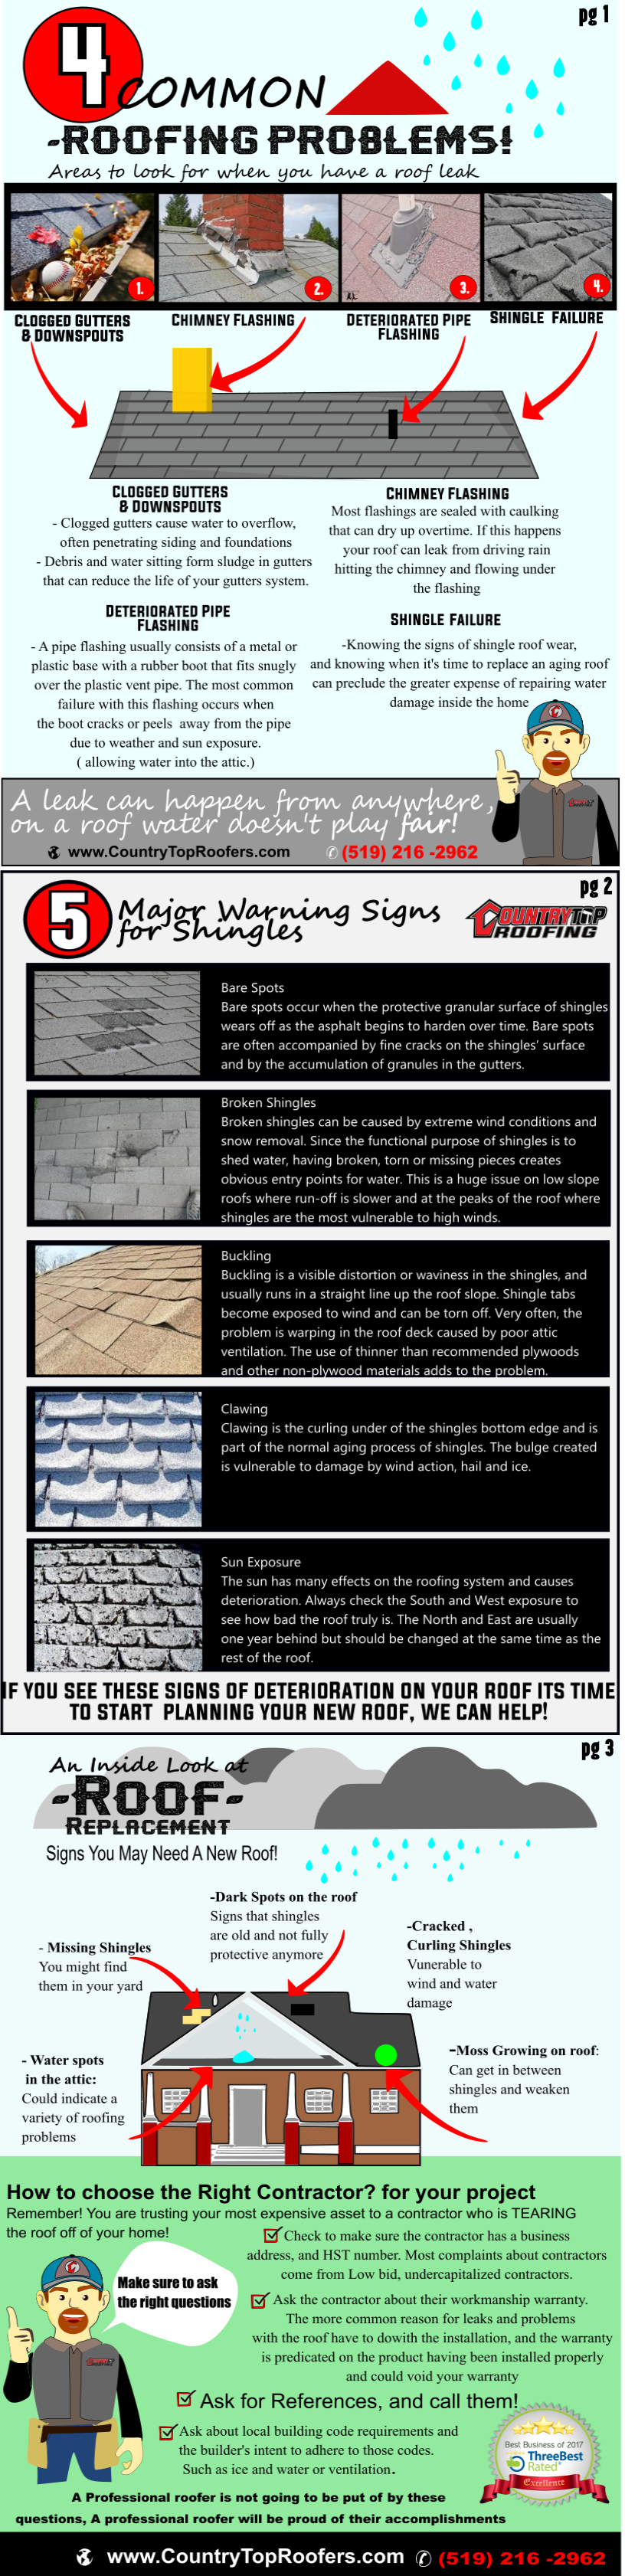 Roof Repairs or Replacement in Orangeville, Shelburne, Collingwood with roofing problems